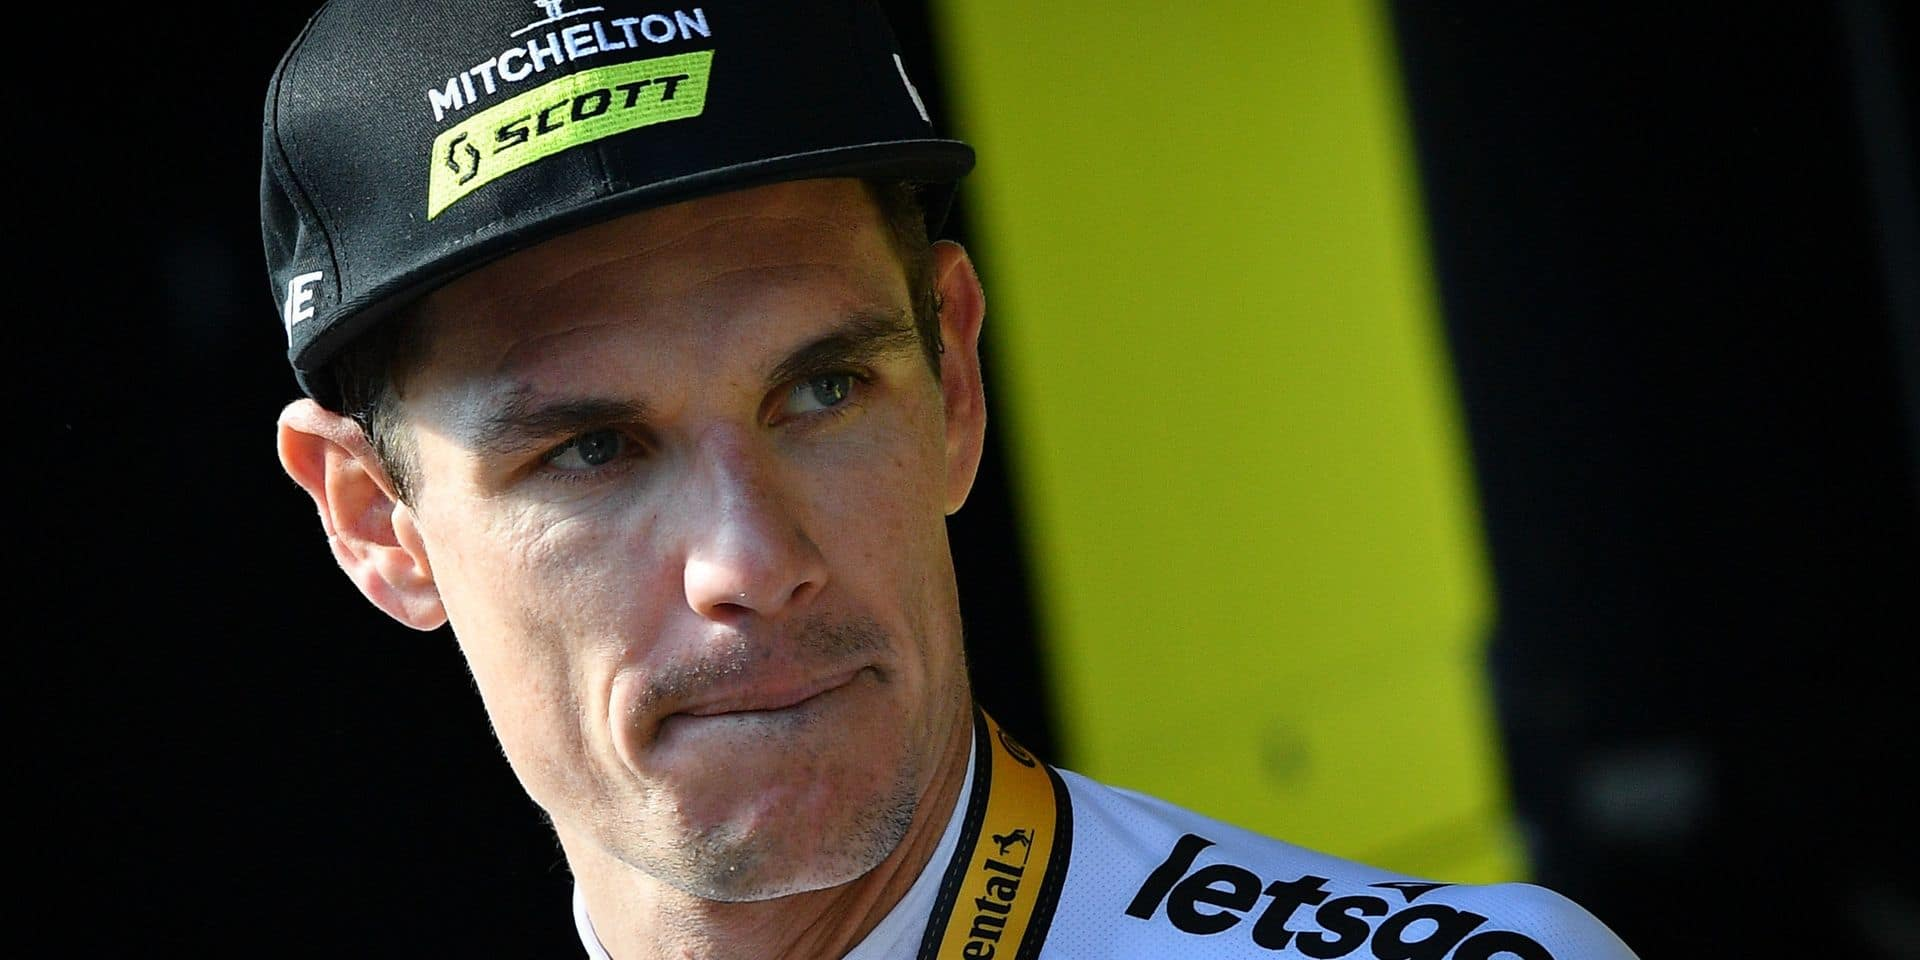 Daryl Impey rejoindra Chris Froome l'an prochain dans l'équipe Israël Start-Up Nation